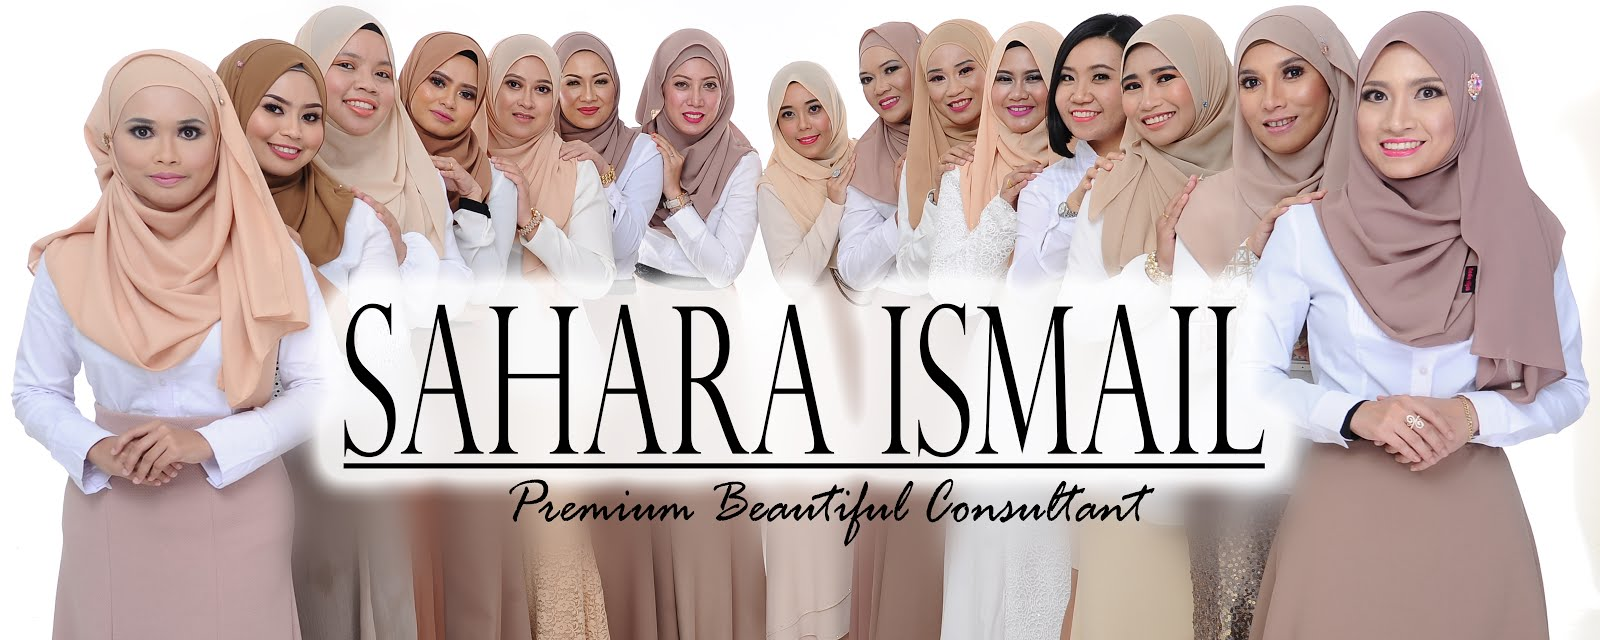 SAHARA ISMAIL | Premium Beautiful Lelong 2017